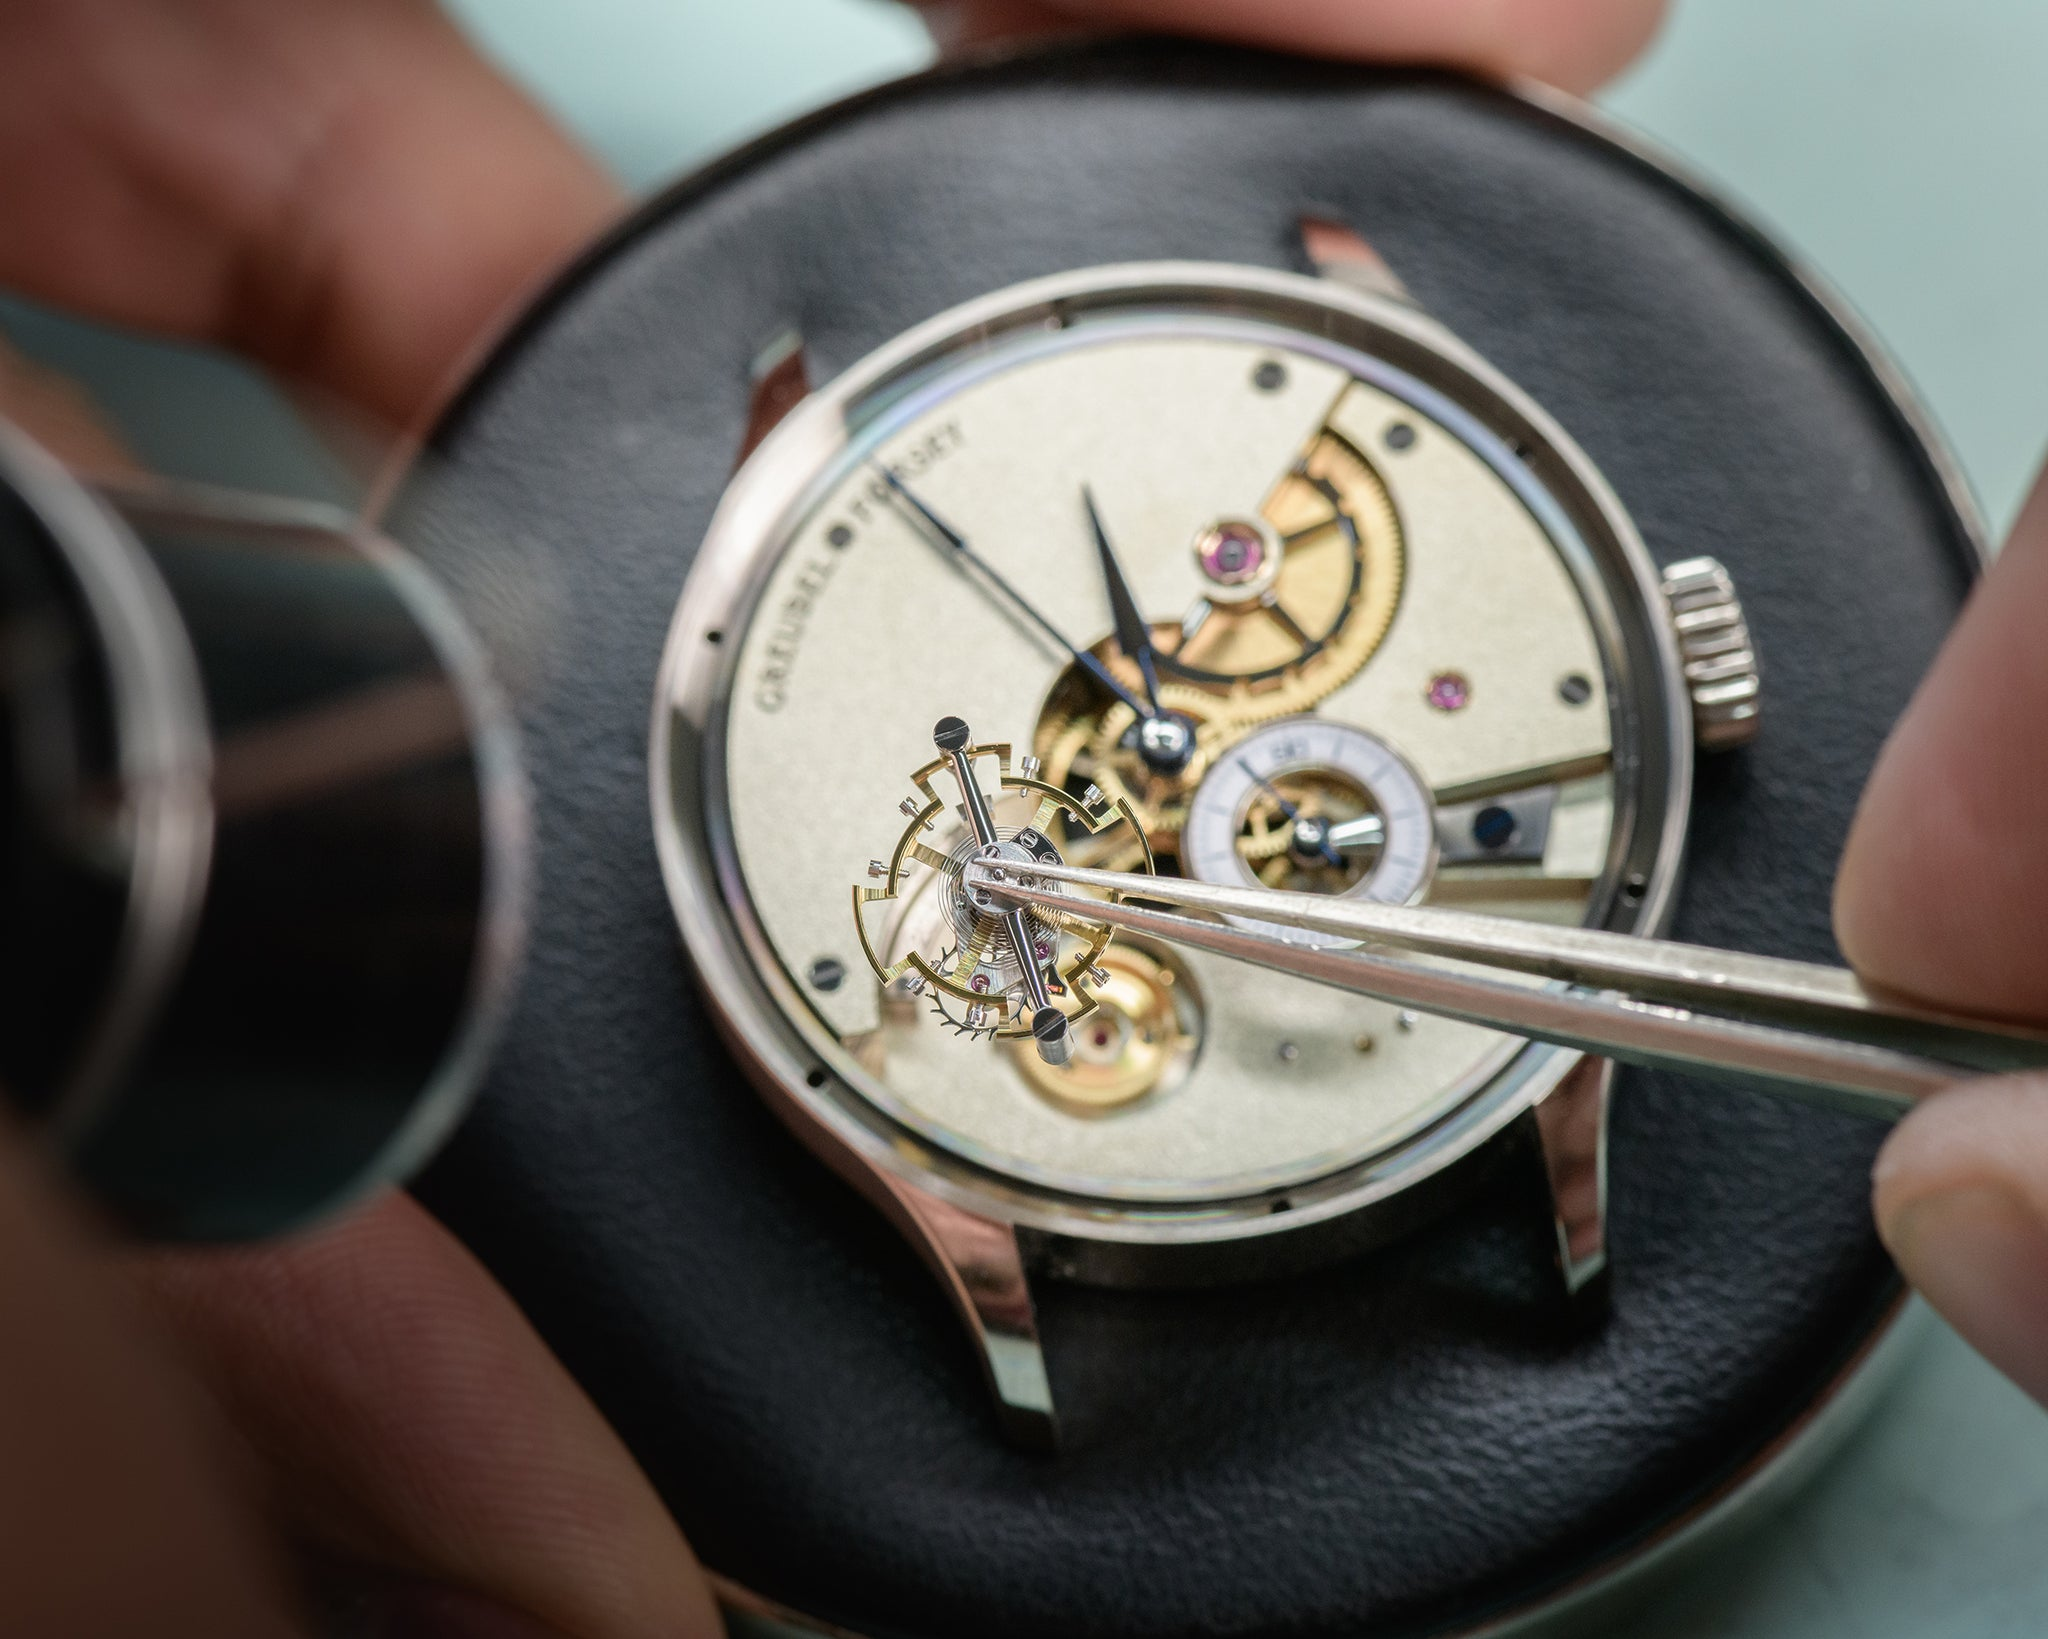 Greubel Forsey hand Made one setting of the tourbillon by hand